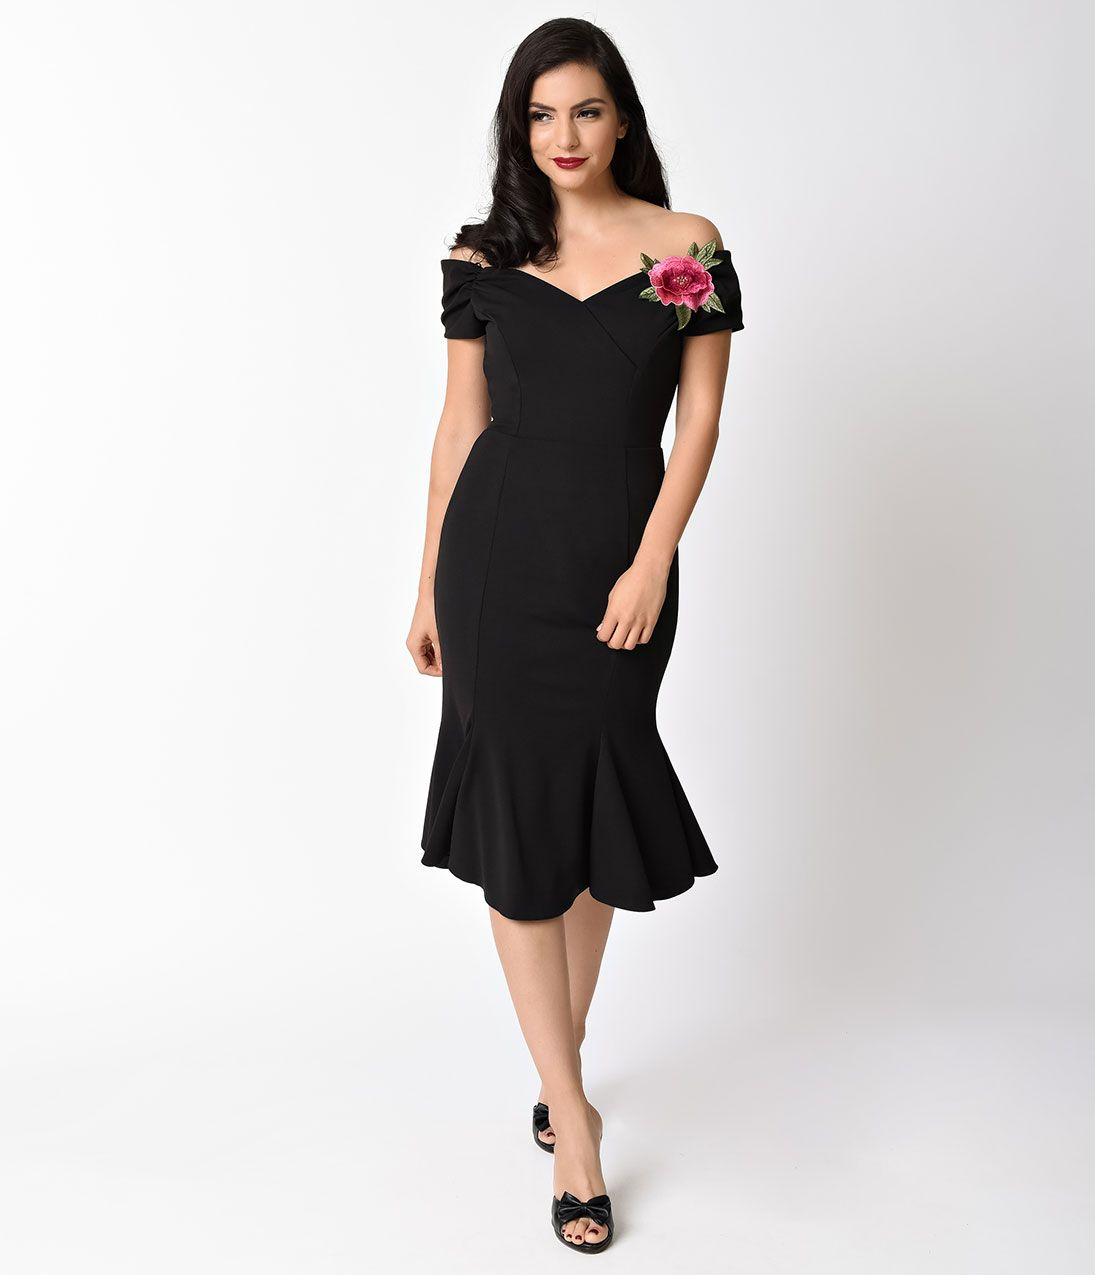 Wiggle Dresses for Sale -1940s, 1950s, 1960s Styles ...